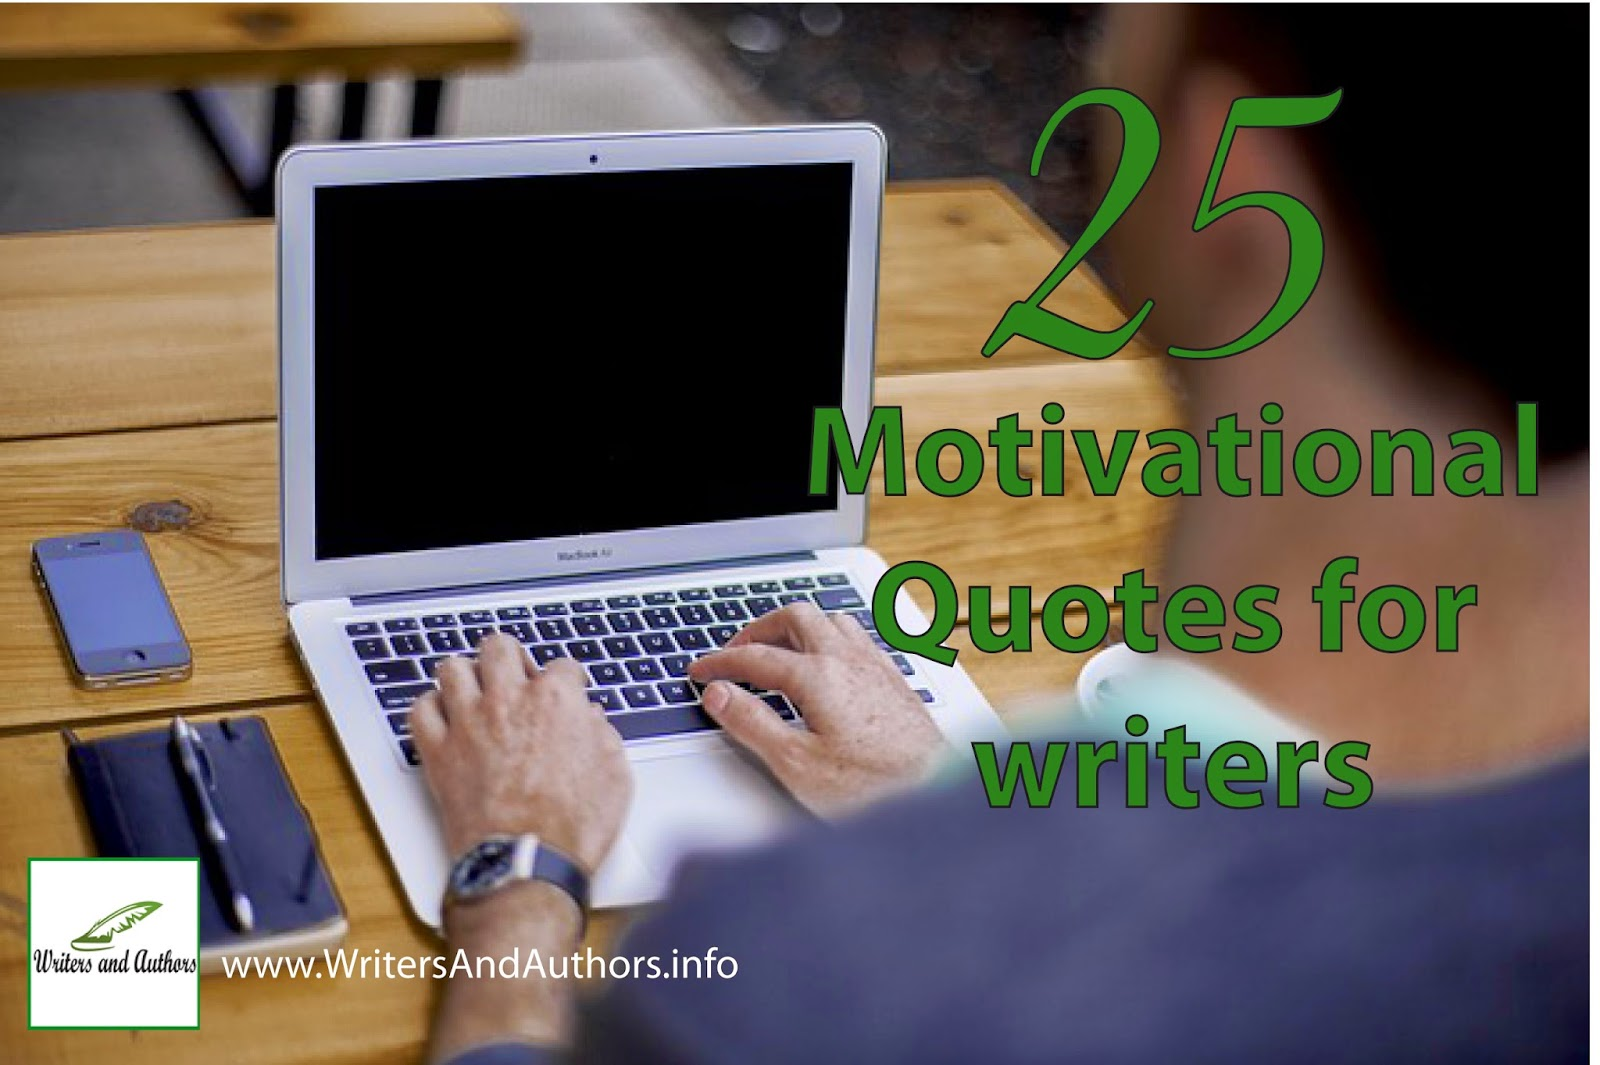 25 Motivational Quotes for Writers www.WritersAndAuthors.info